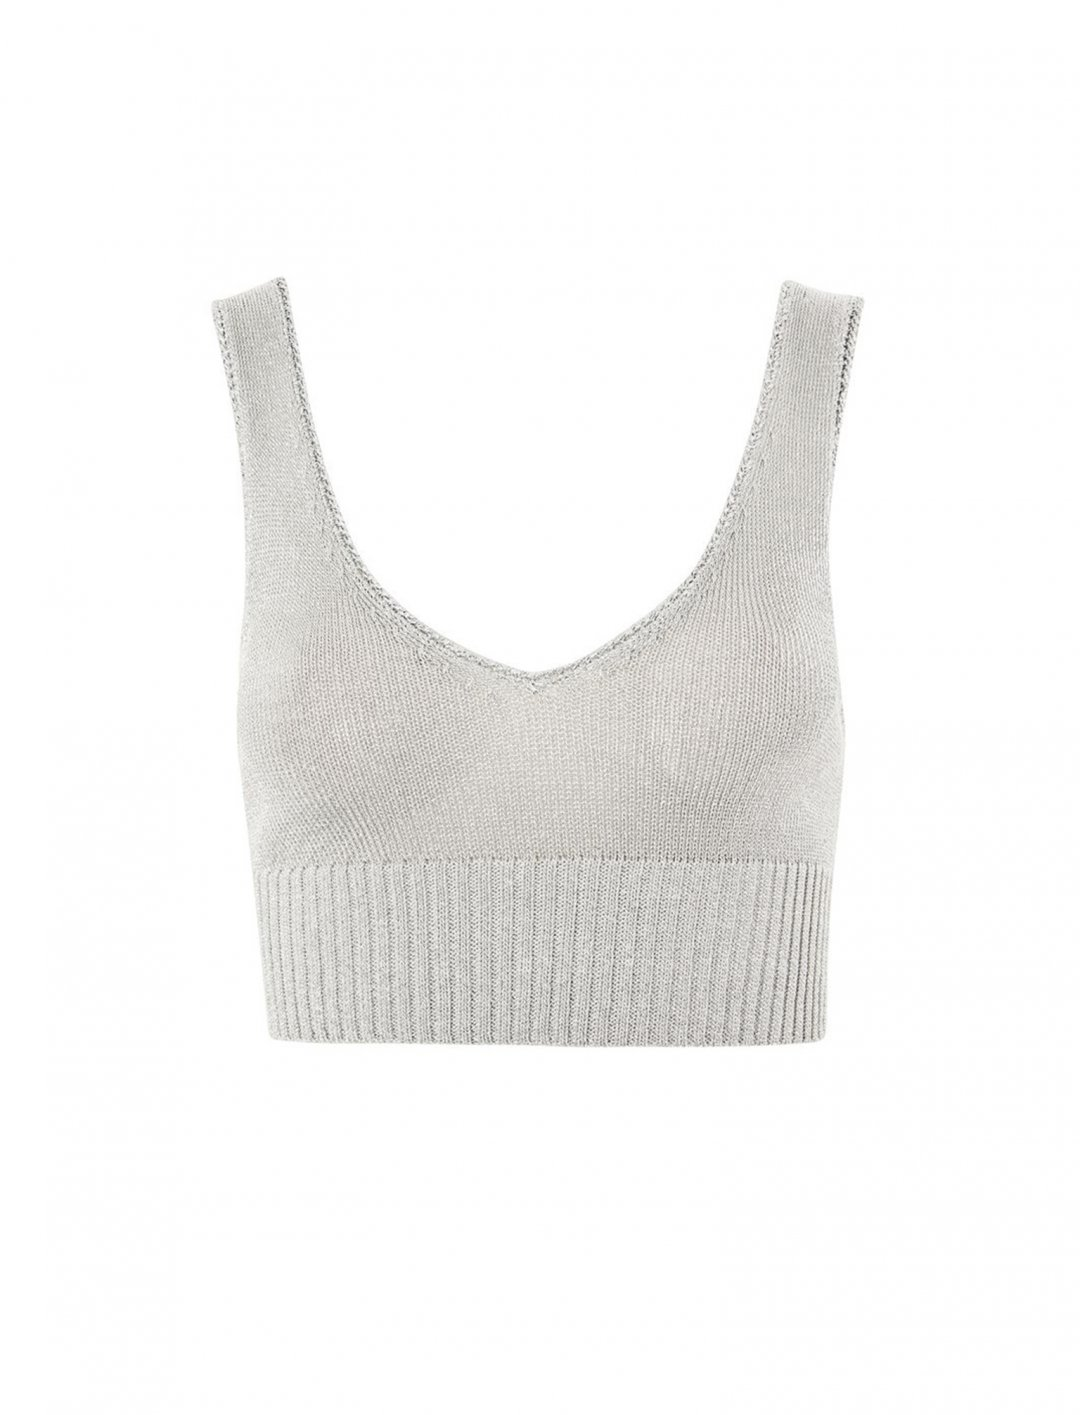 """Topshop Metal Yarn Bralet {""""id"""":5,""""product_section_id"""":1,""""name"""":""""Clothing"""",""""order"""":5} Topshop"""